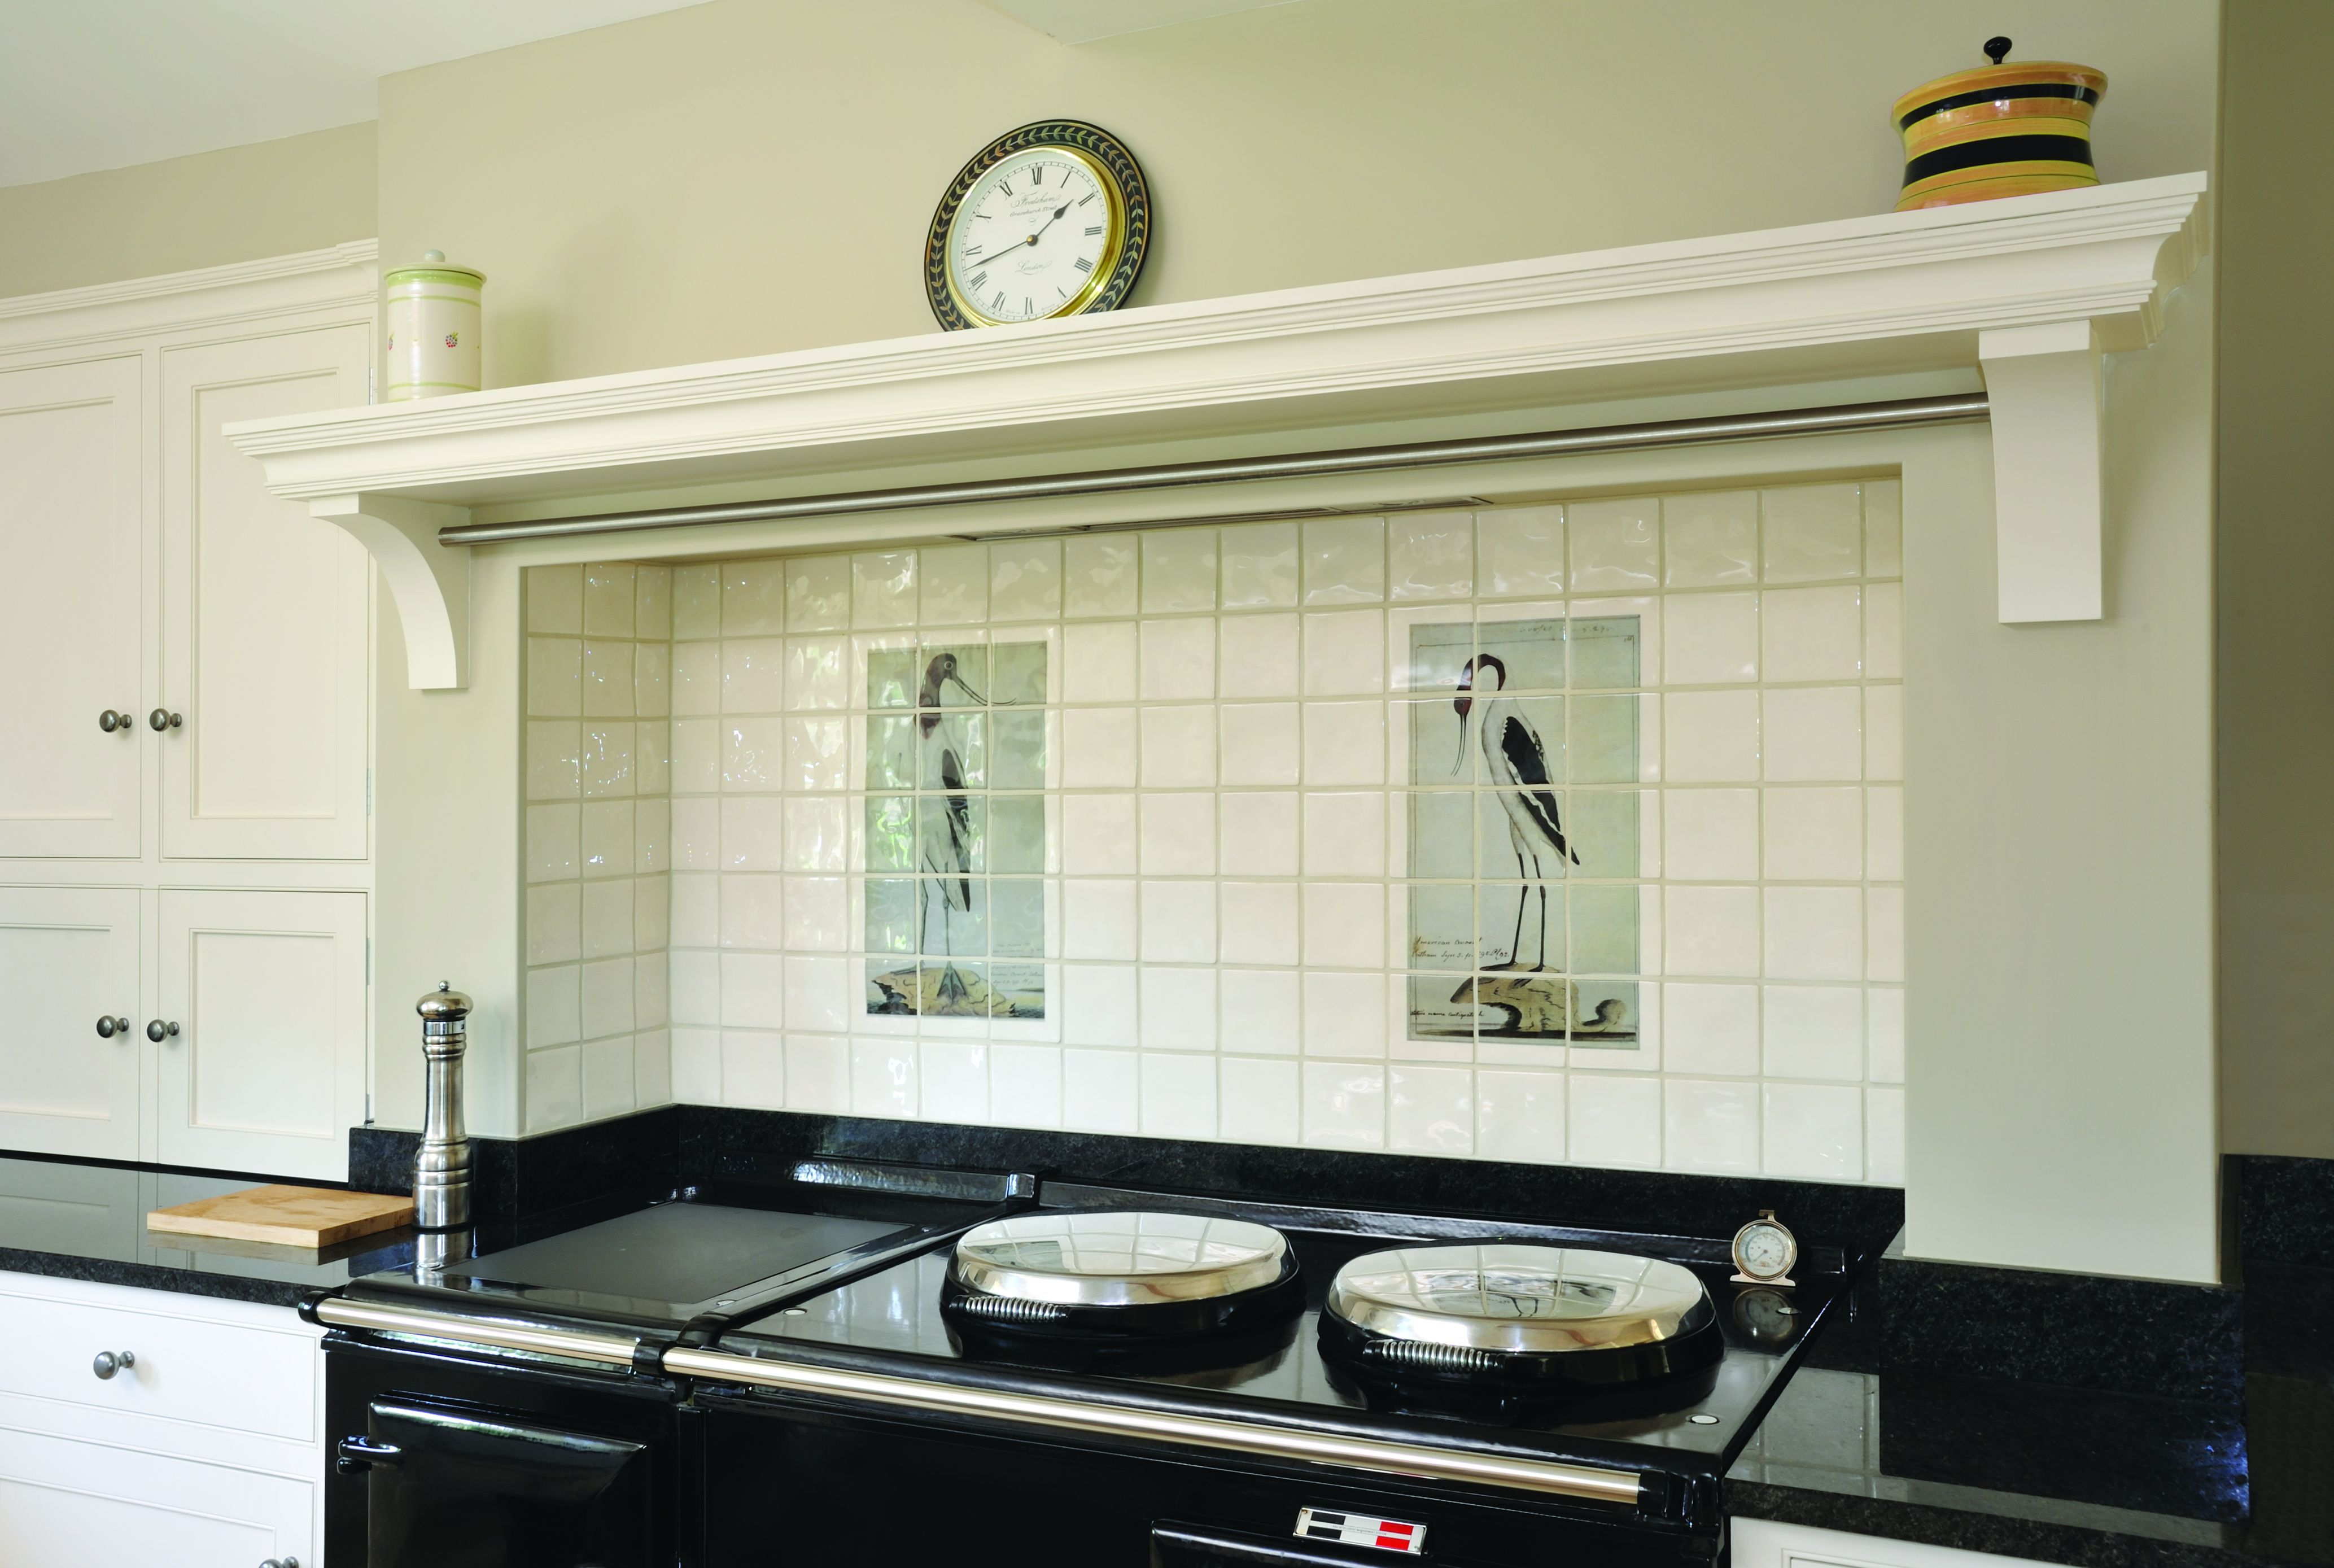 Pin by jebg2 on Aga kitchen | Pinterest | Aga and Kitchens